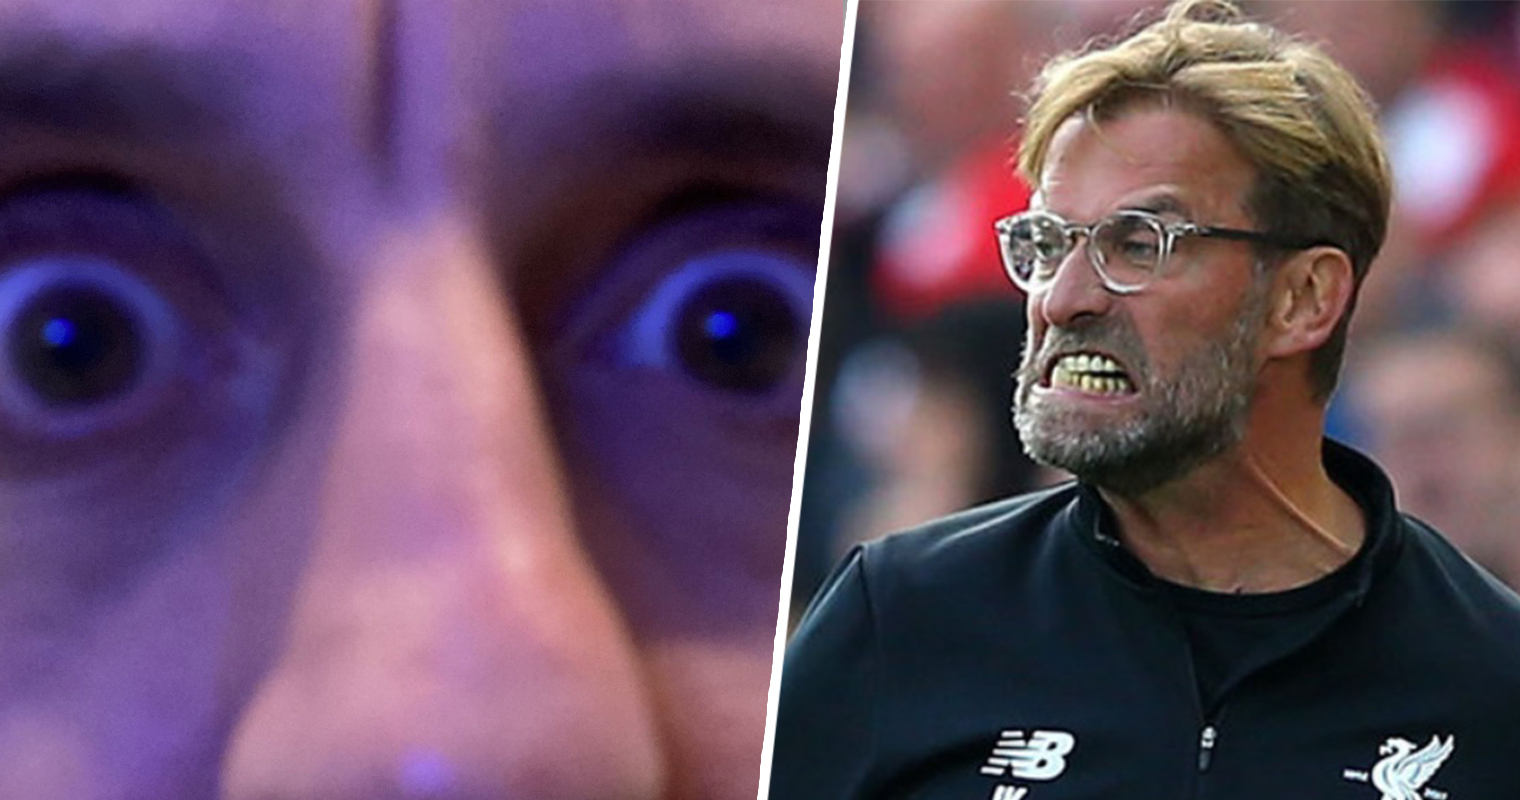 Gary Neville's response after Liverpool's shock defeat to Burnley, The Manc